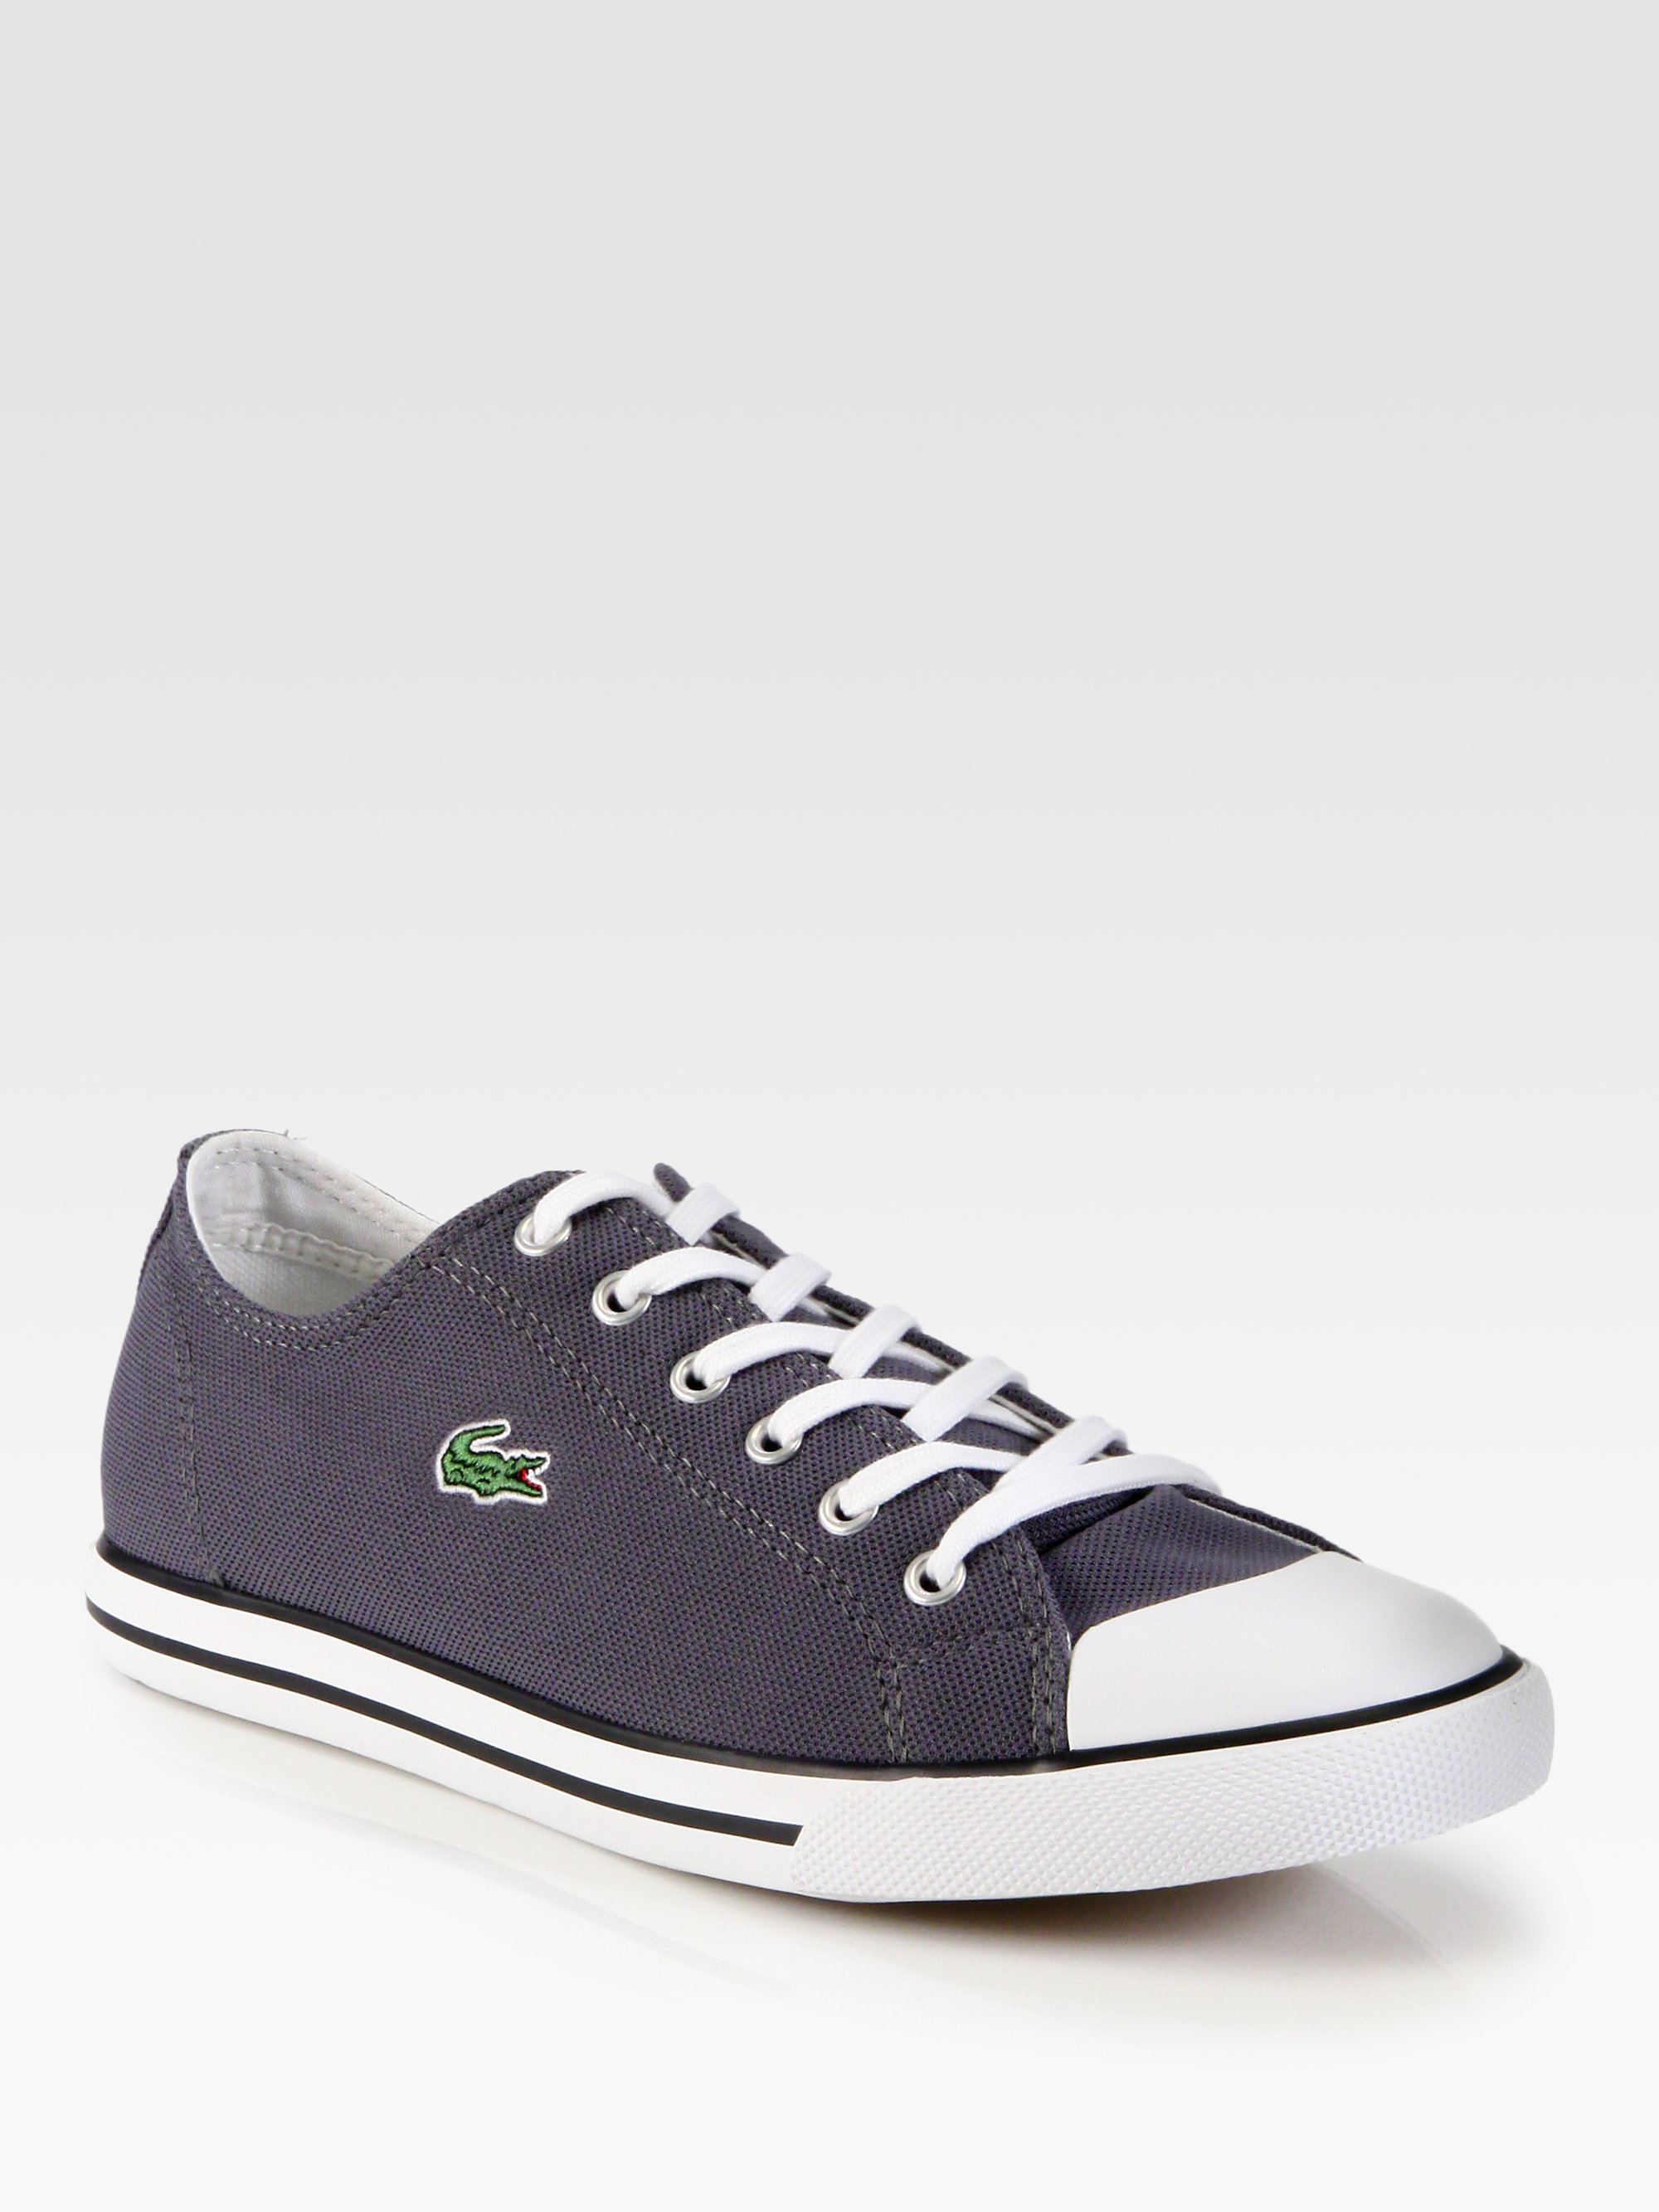 lyst lacoste casual sneakers in gray for men